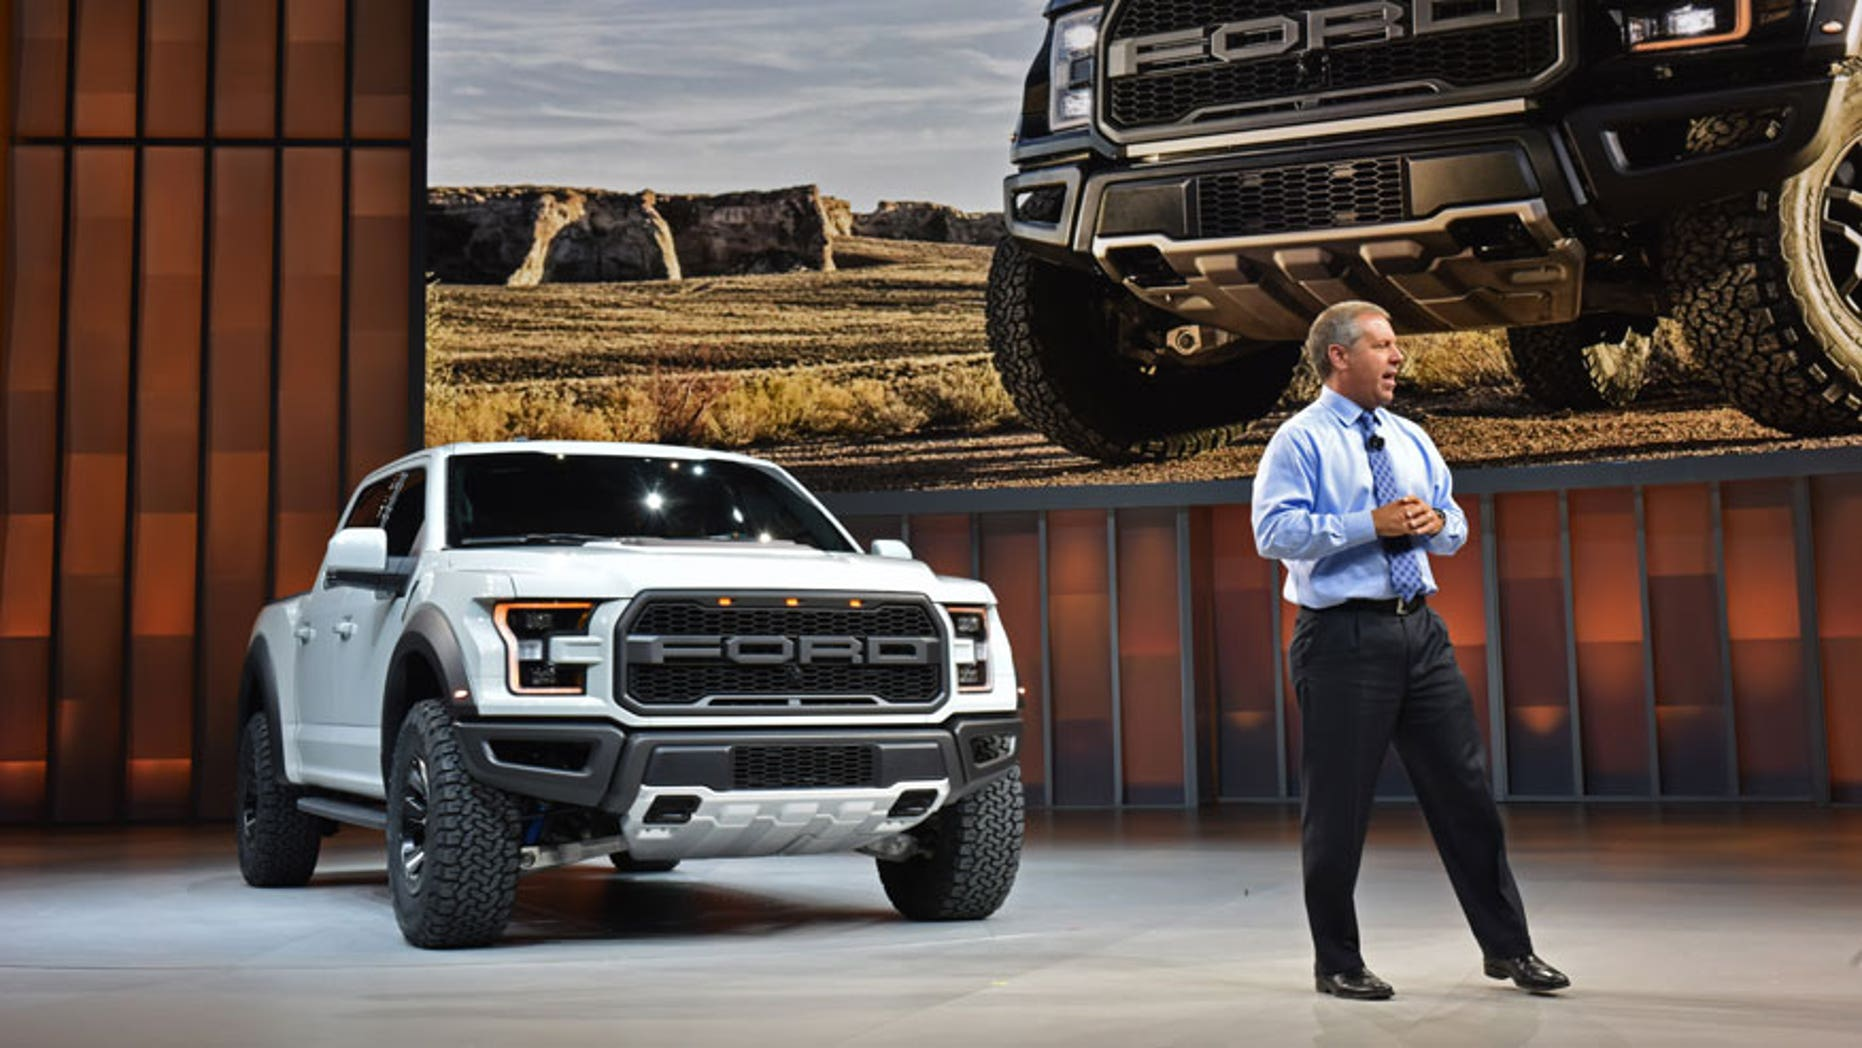 Ford President of the Americas, Joe Hinrichs, and the 2017 Ford F-150 Raptor SuperCrew